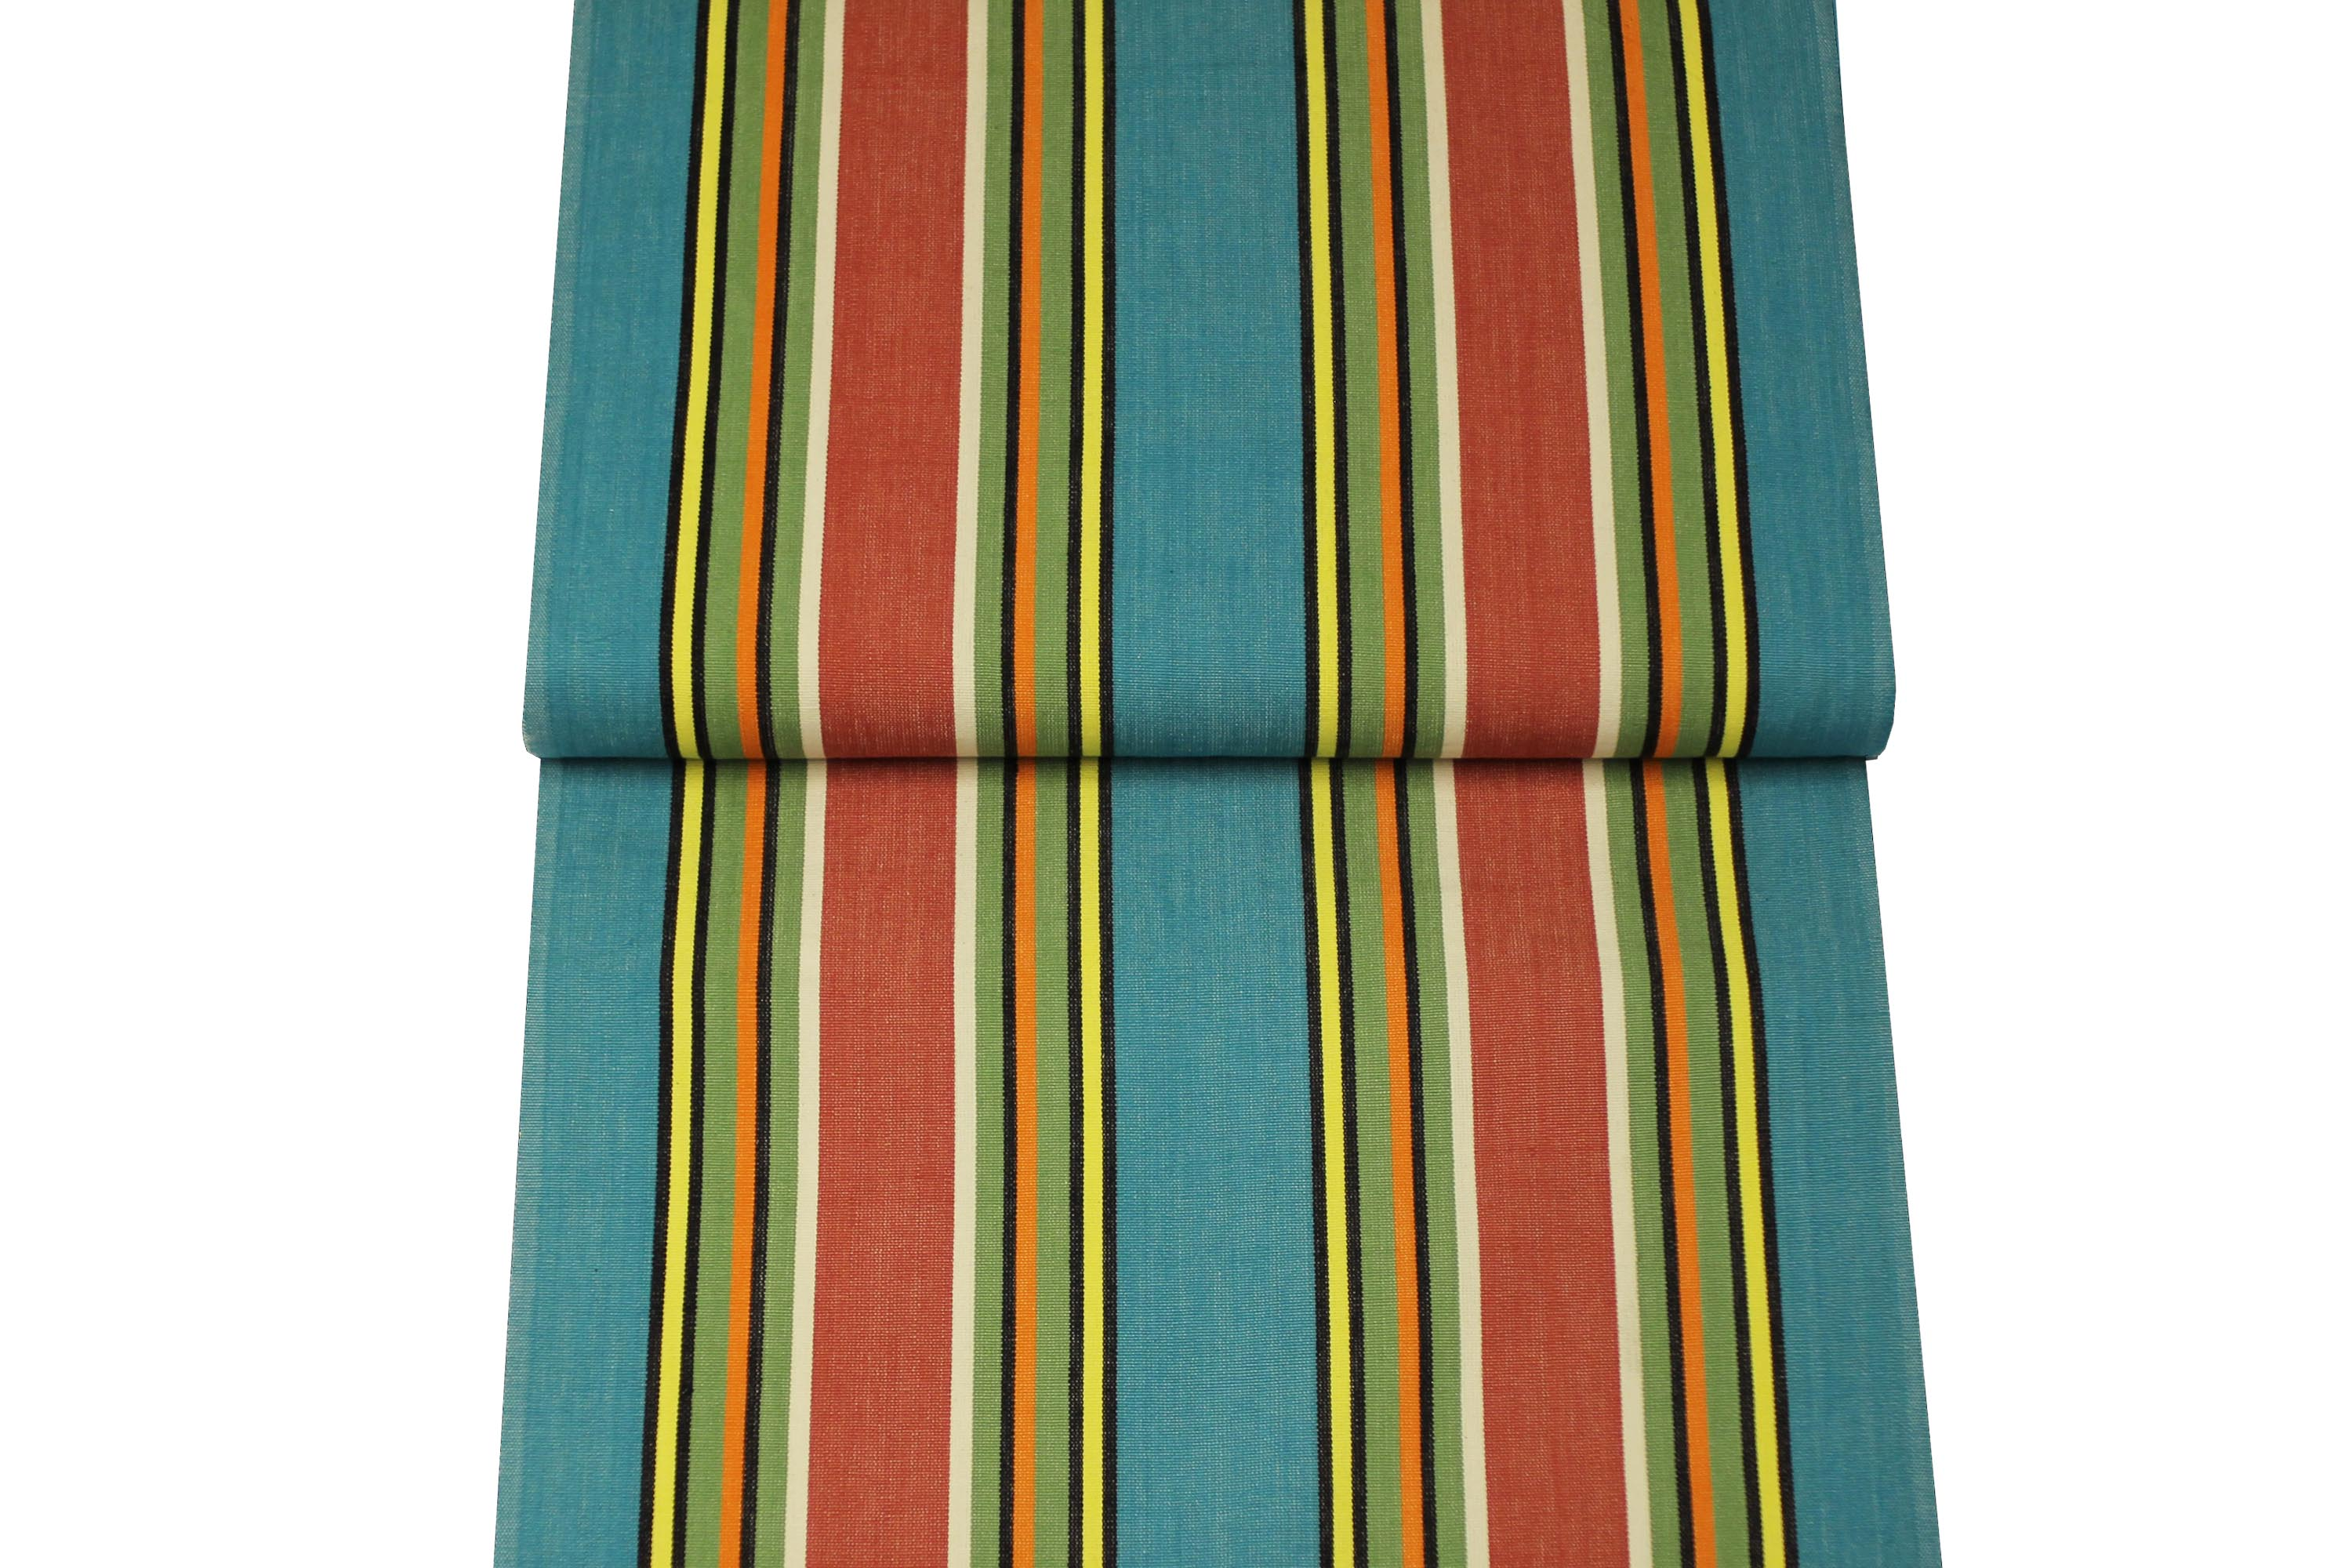 Turquoise Deckchair Canvas Vintage Archive Striped Fabrics | Vintage Deckchair Fabric Bagatelle Stripes